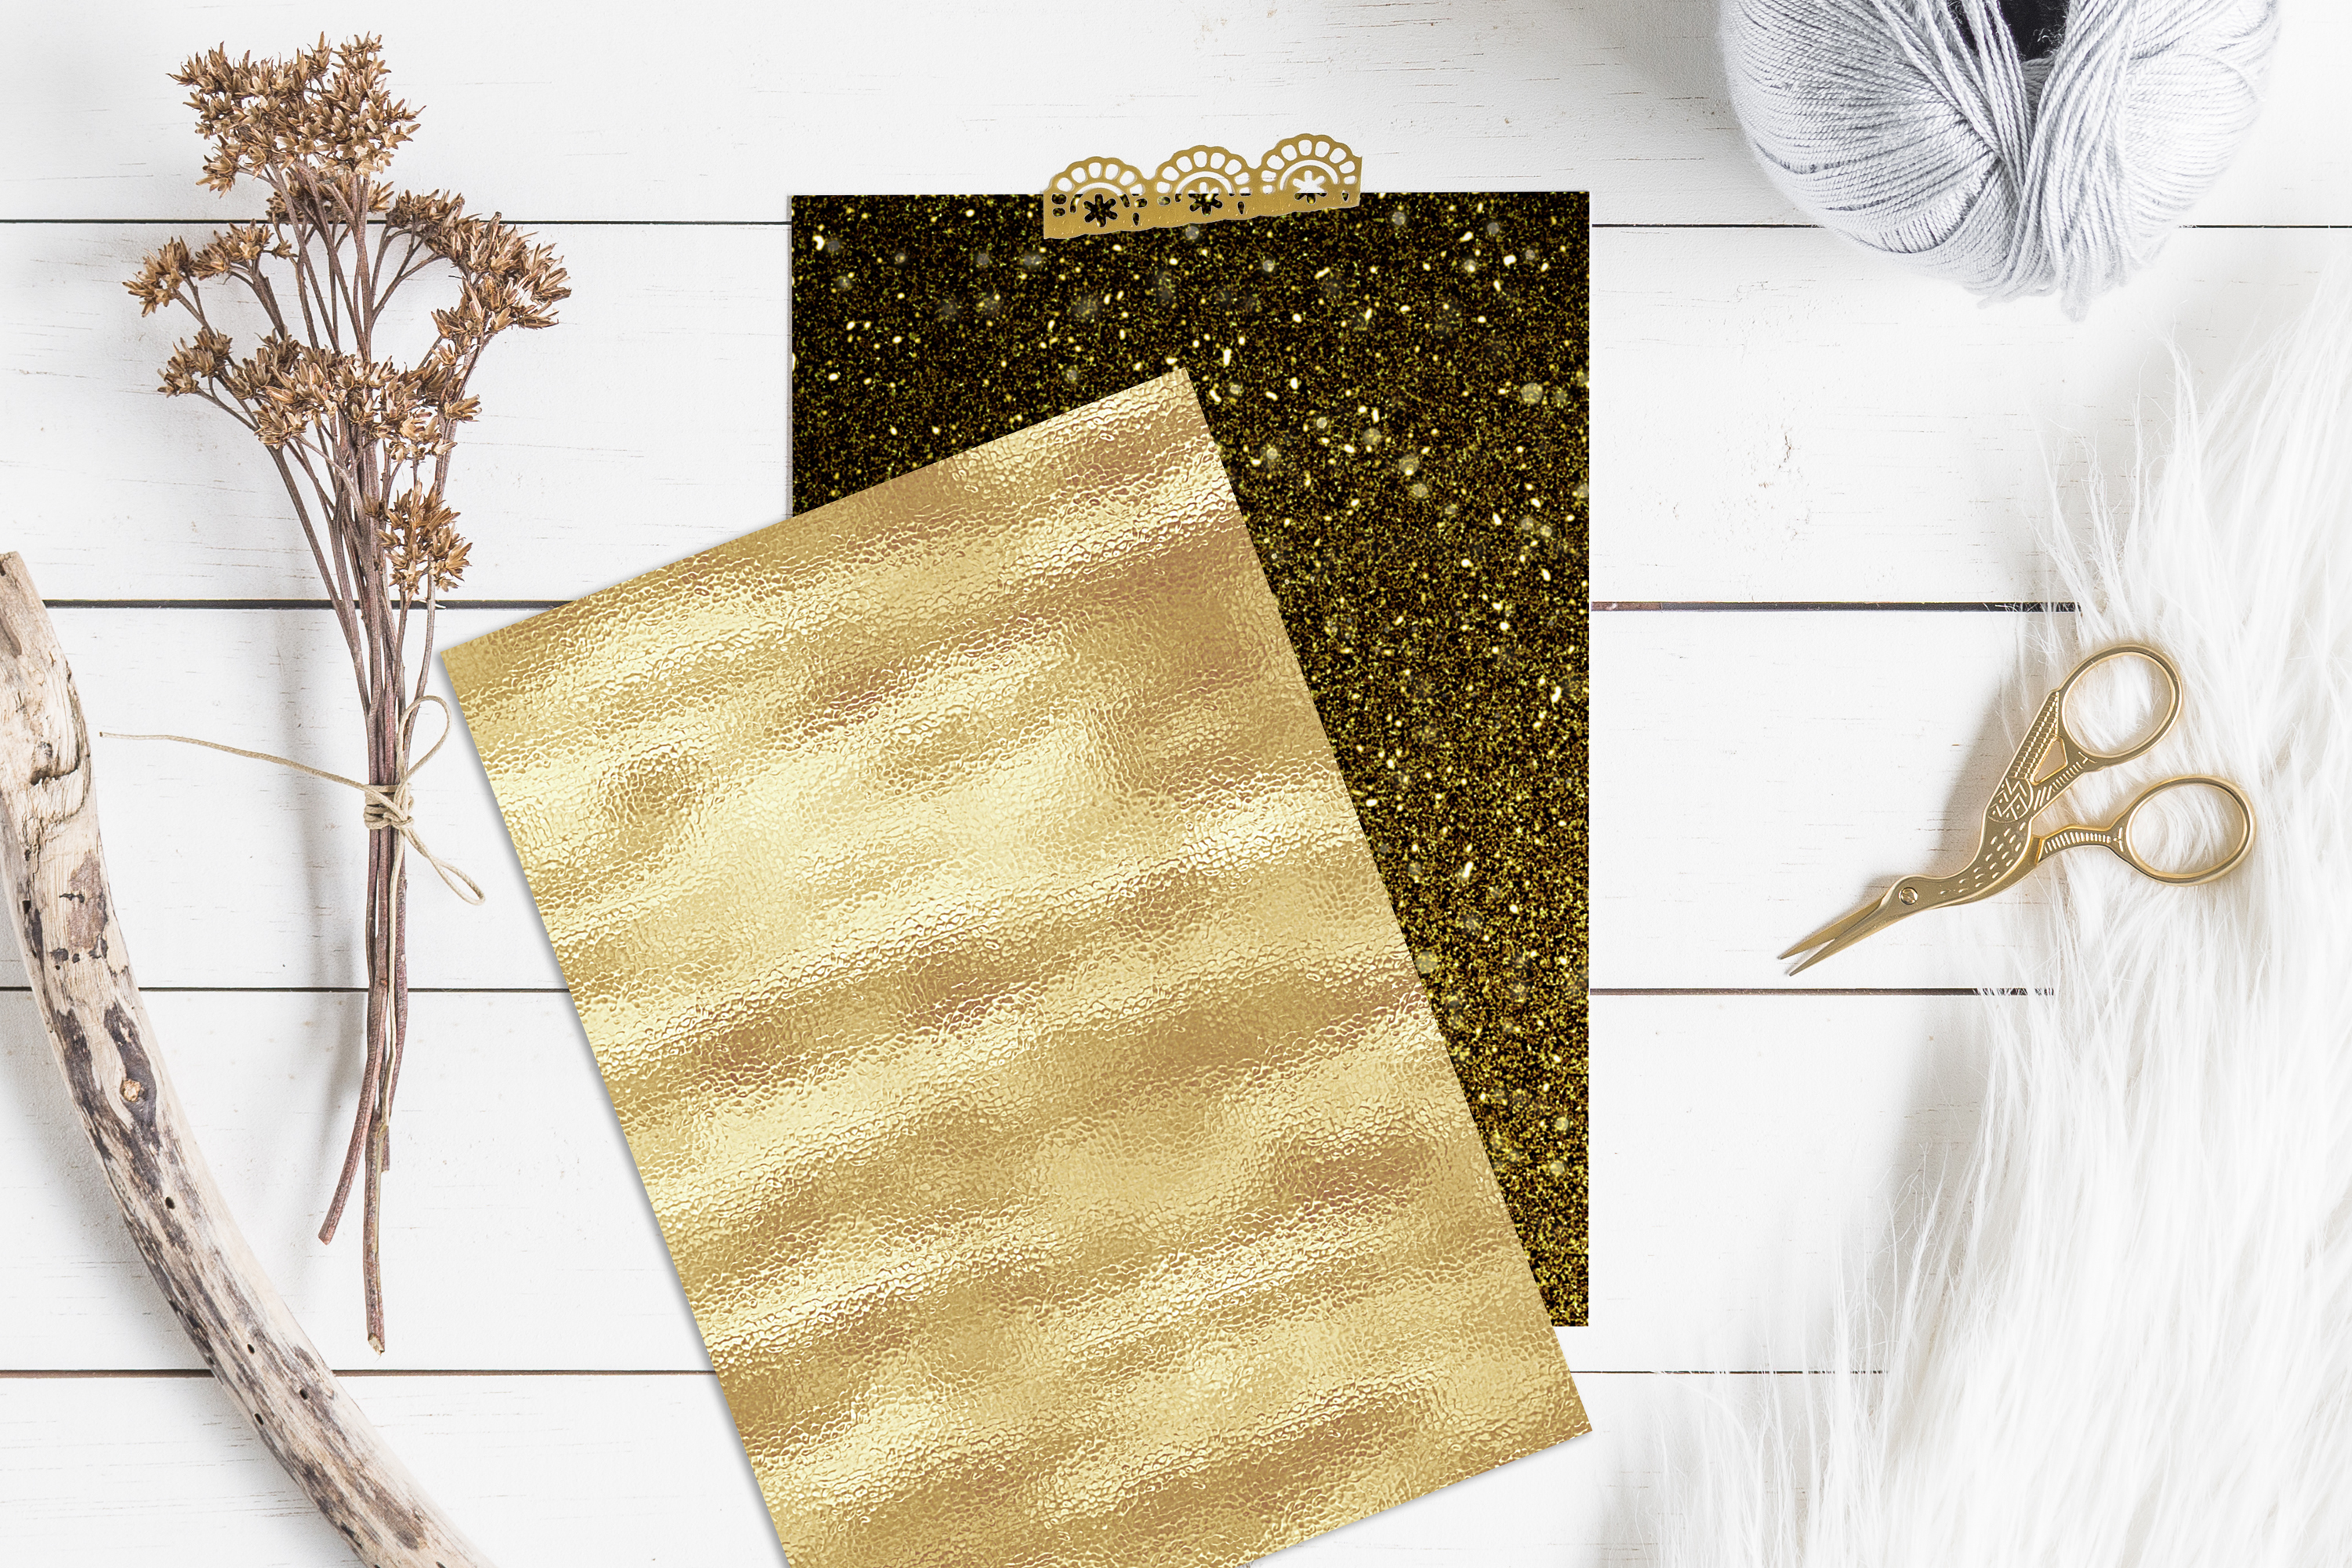 Gold Foil and Glitter Textures - Metallic Digital Papers example image 6